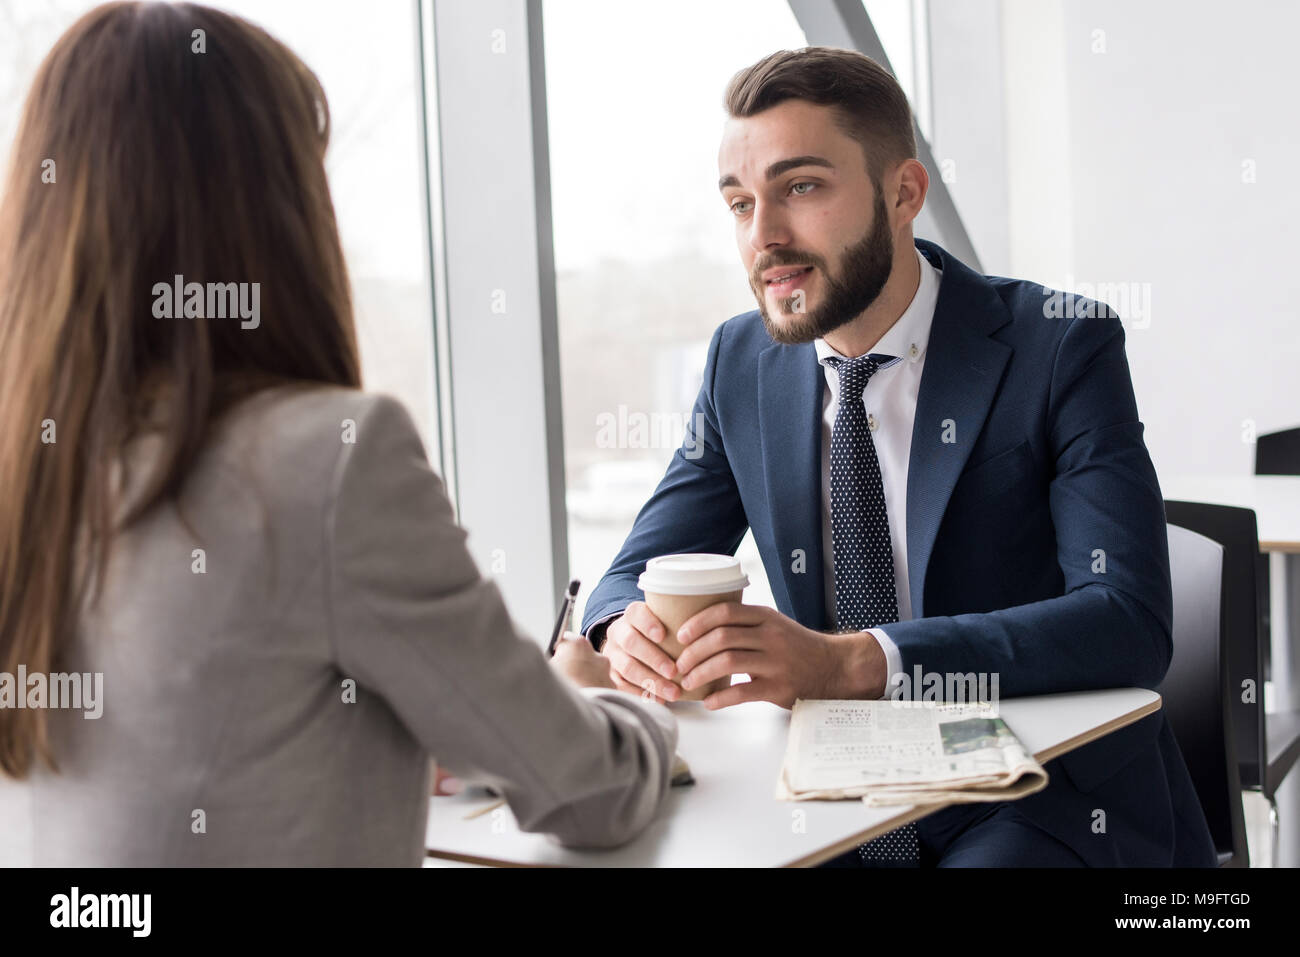 Business Couple in Cafe - Stock Image